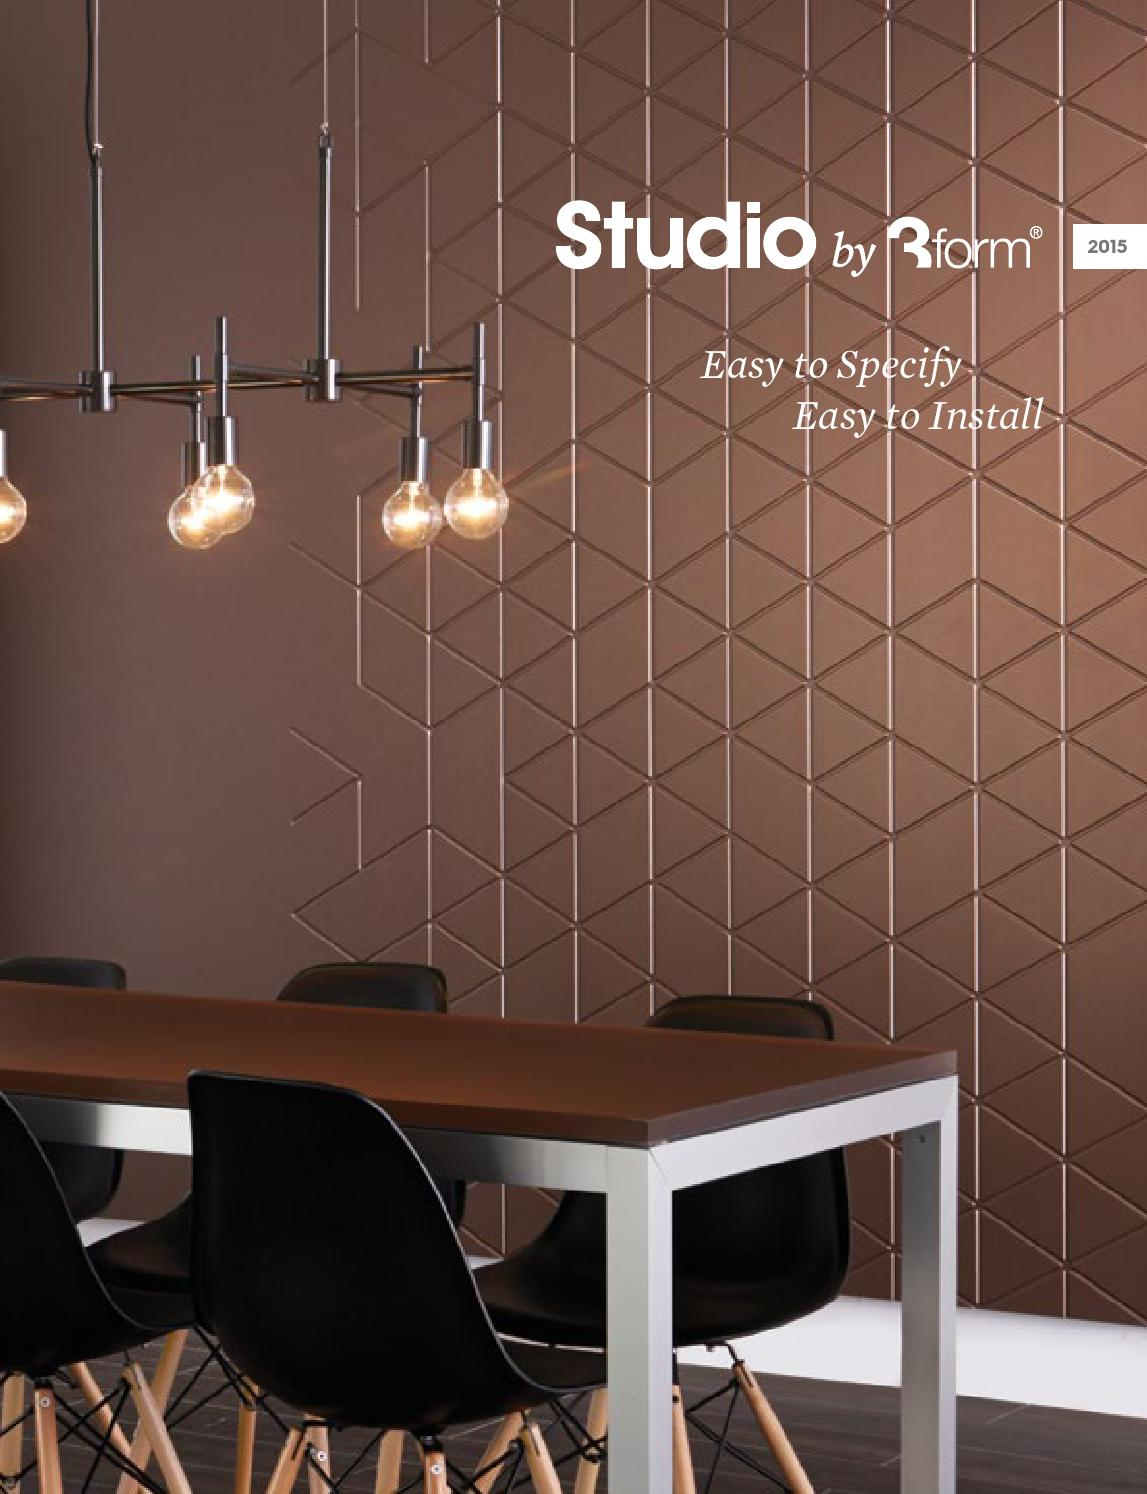 Studio By 3form Catalog 2015 By 3form Issuu